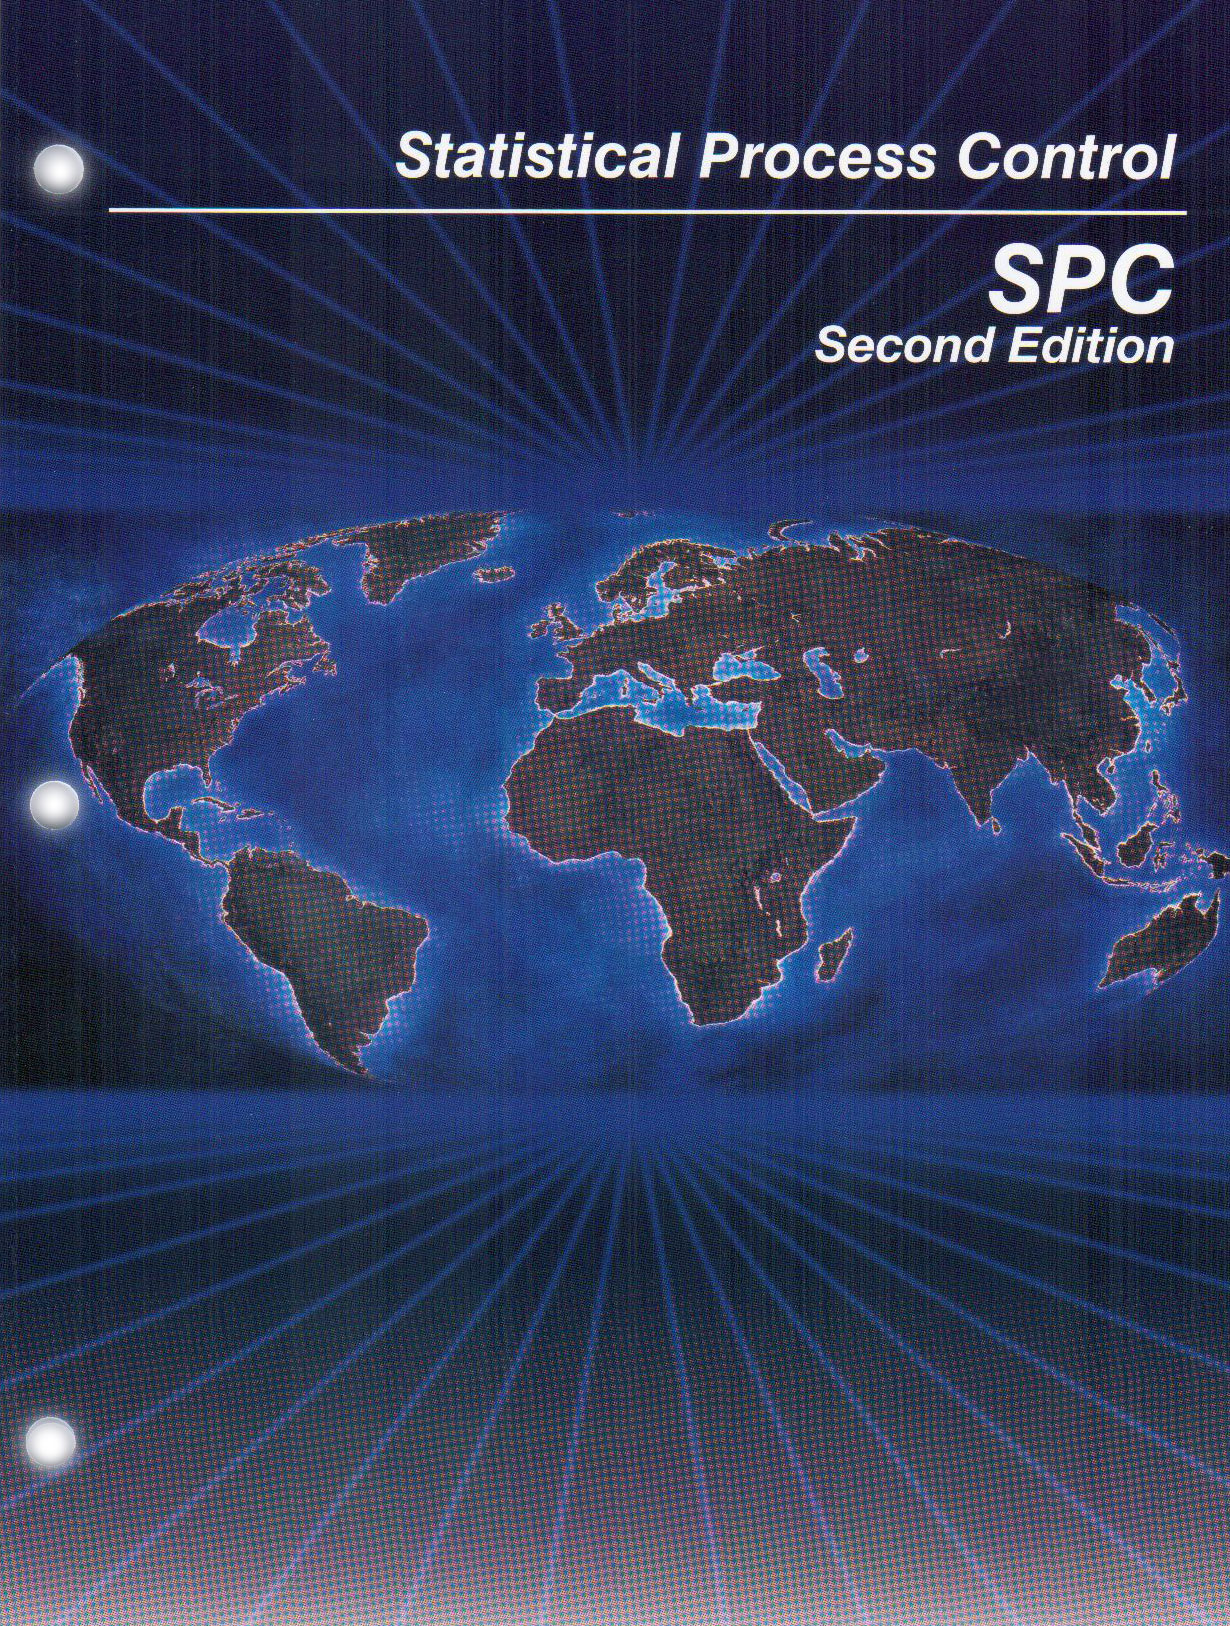 spc manual latest edition browse manual guides u2022 rh trufflefries co USP-NF Latest Edition ACLS Latest Edition